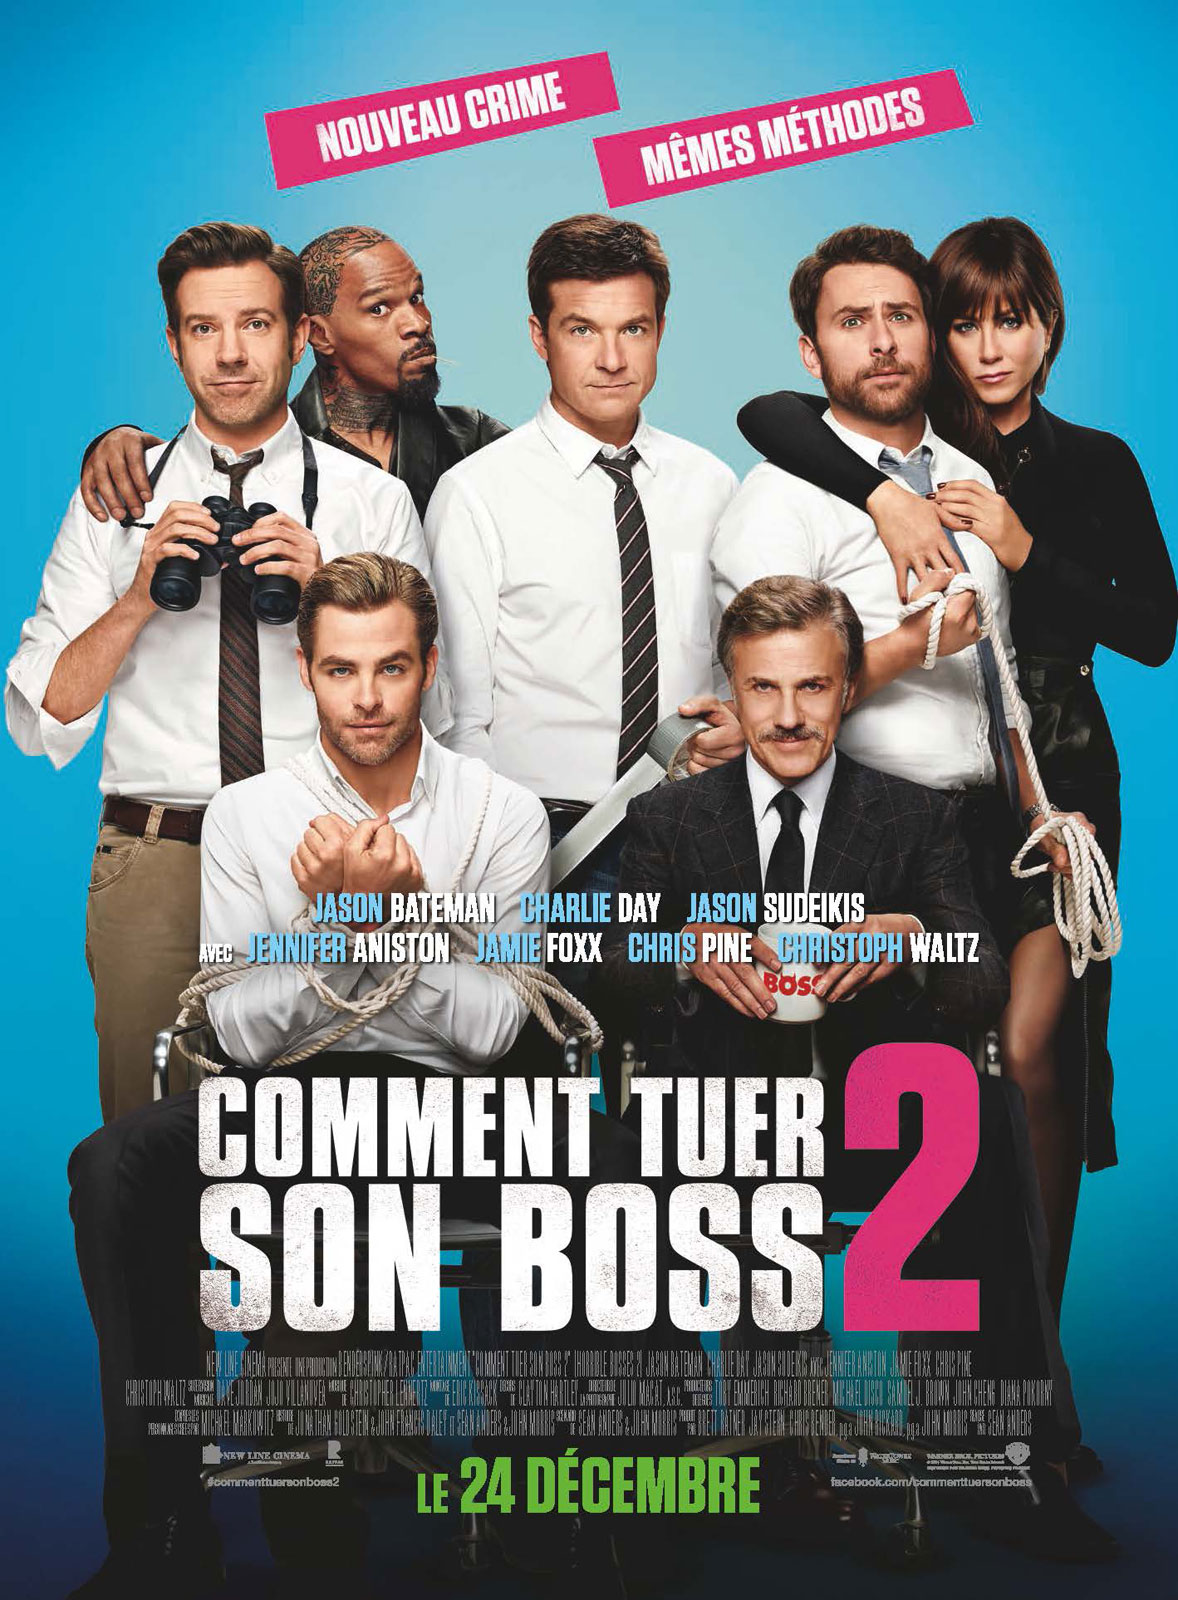 Comment Tuer Son Boss 2 Streaming : comment, streaming, Achat, Comment, AlloCiné